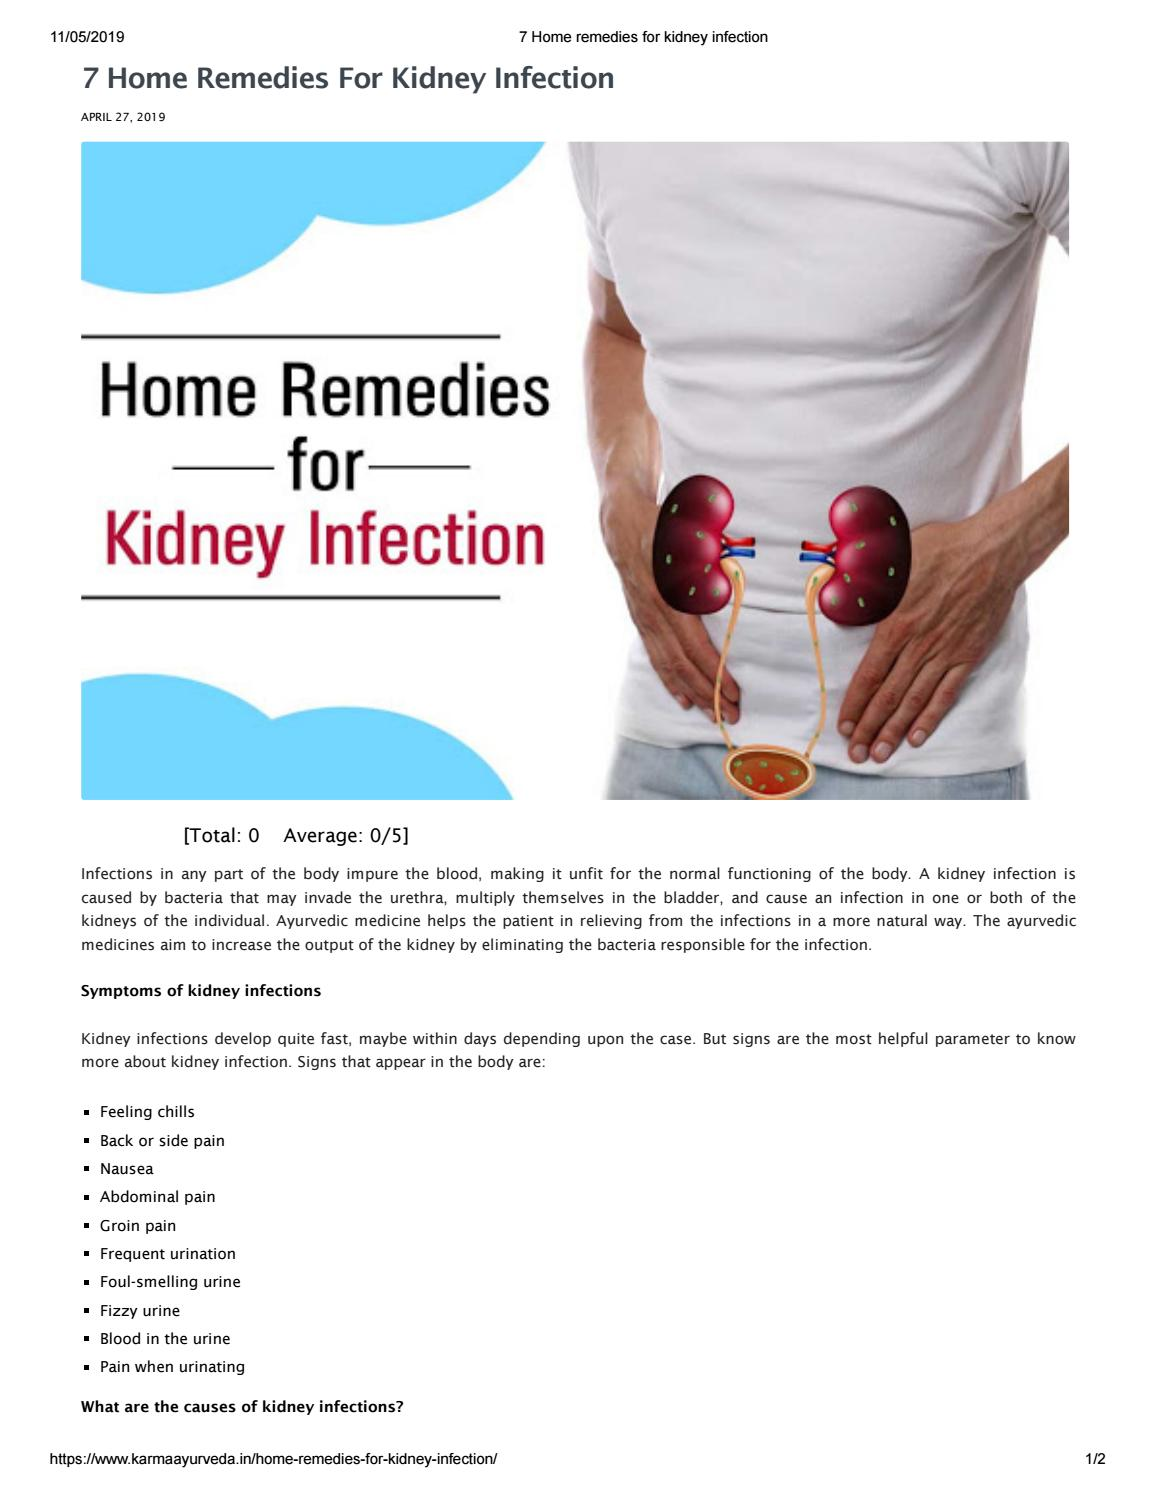 7 Home Remedies For Kidney Infection By Kidney Treatment In Ayurveda Issuu